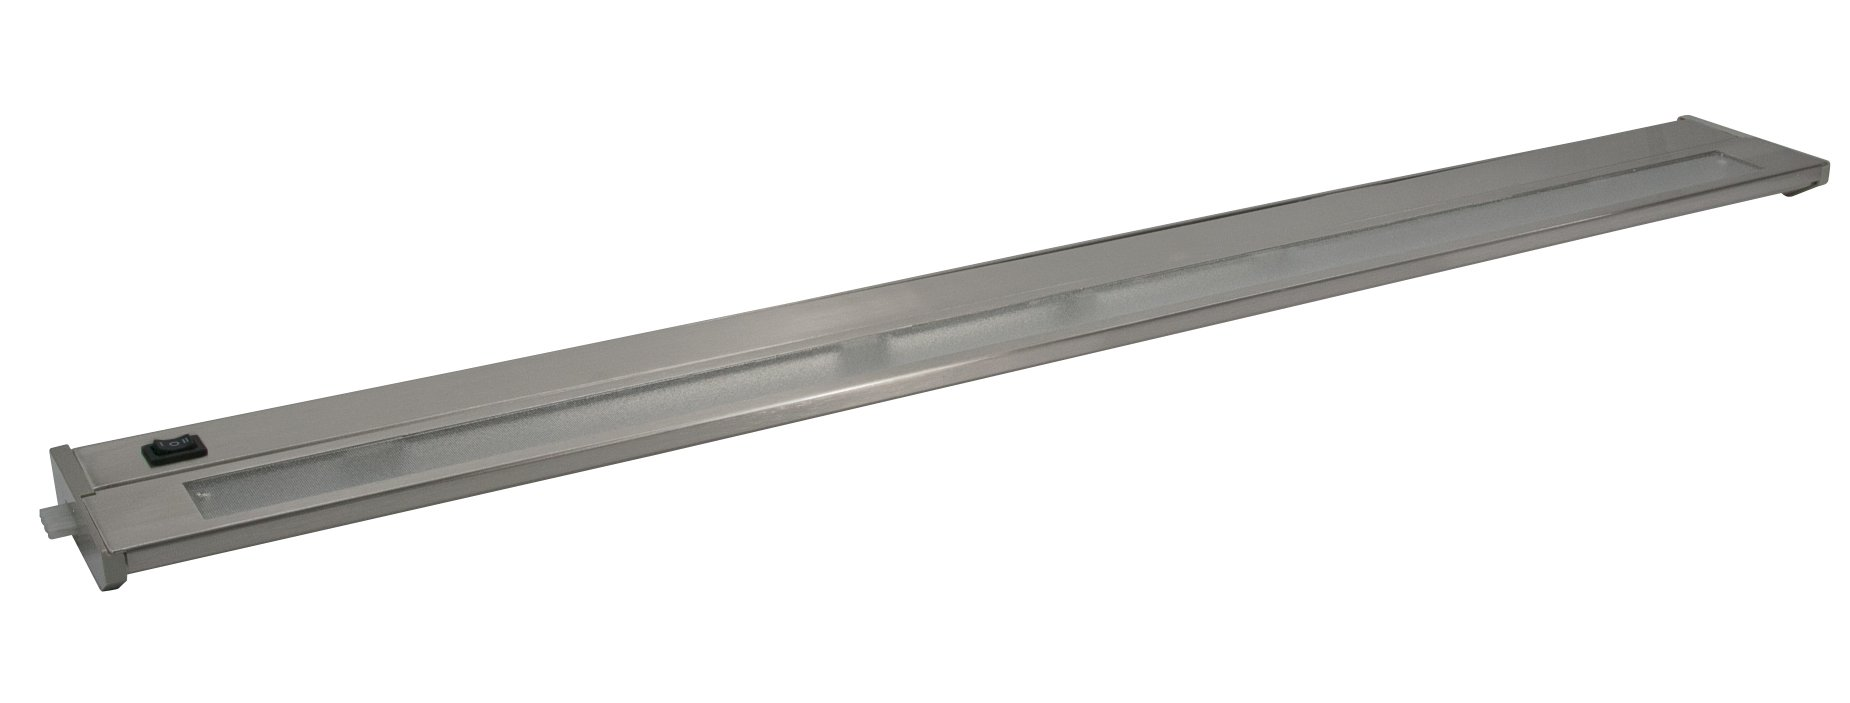 American Lighting 043X-4-BS Priori Xenon Under Cabinet Hardwire Light, 80-Watts, Hi/Low/Off Switch, 120-Volt, 32-Inch, Brushed Steel